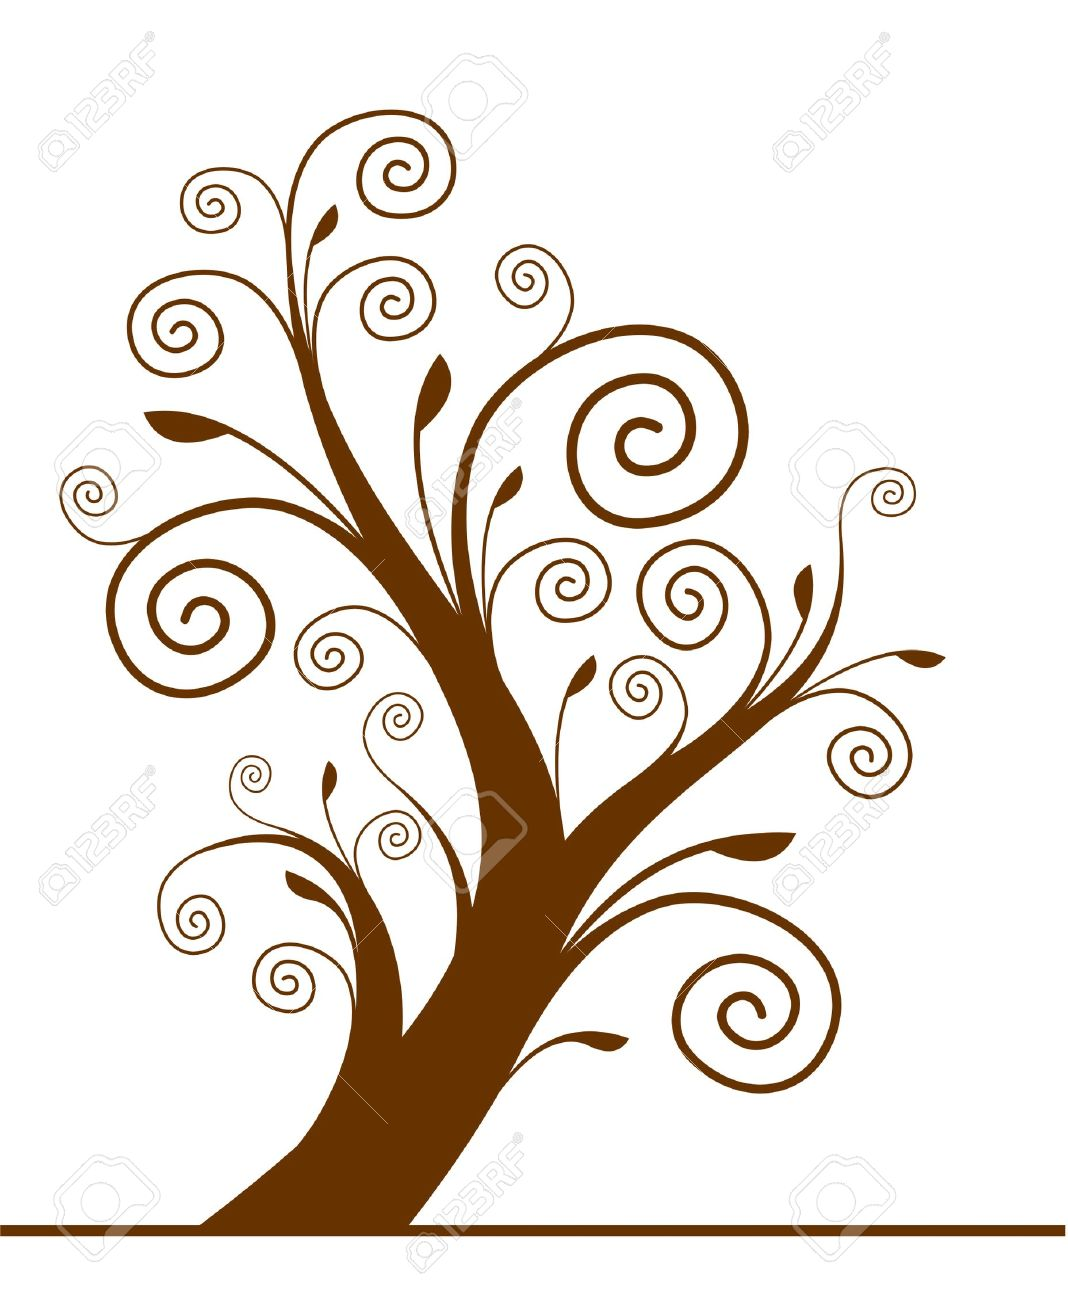 Tree Silhouette With Spiral Leaf. Vector. Royalty Free Cliparts.